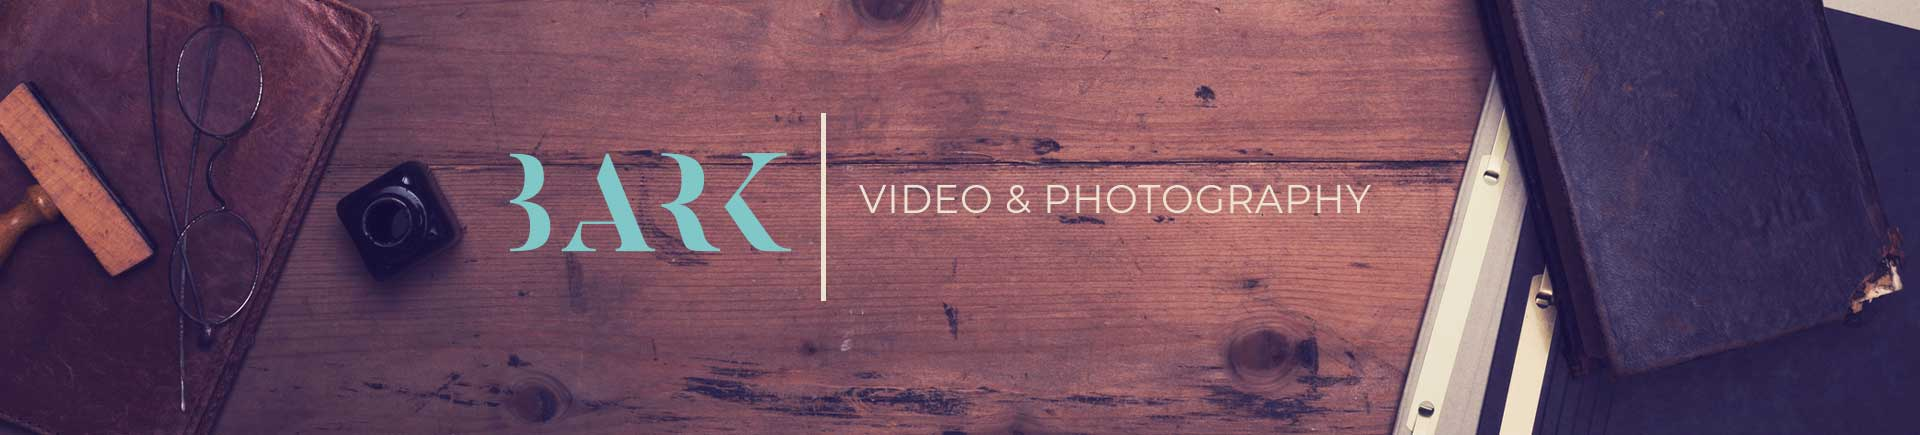 videography and photography services for businesses in Wyoming